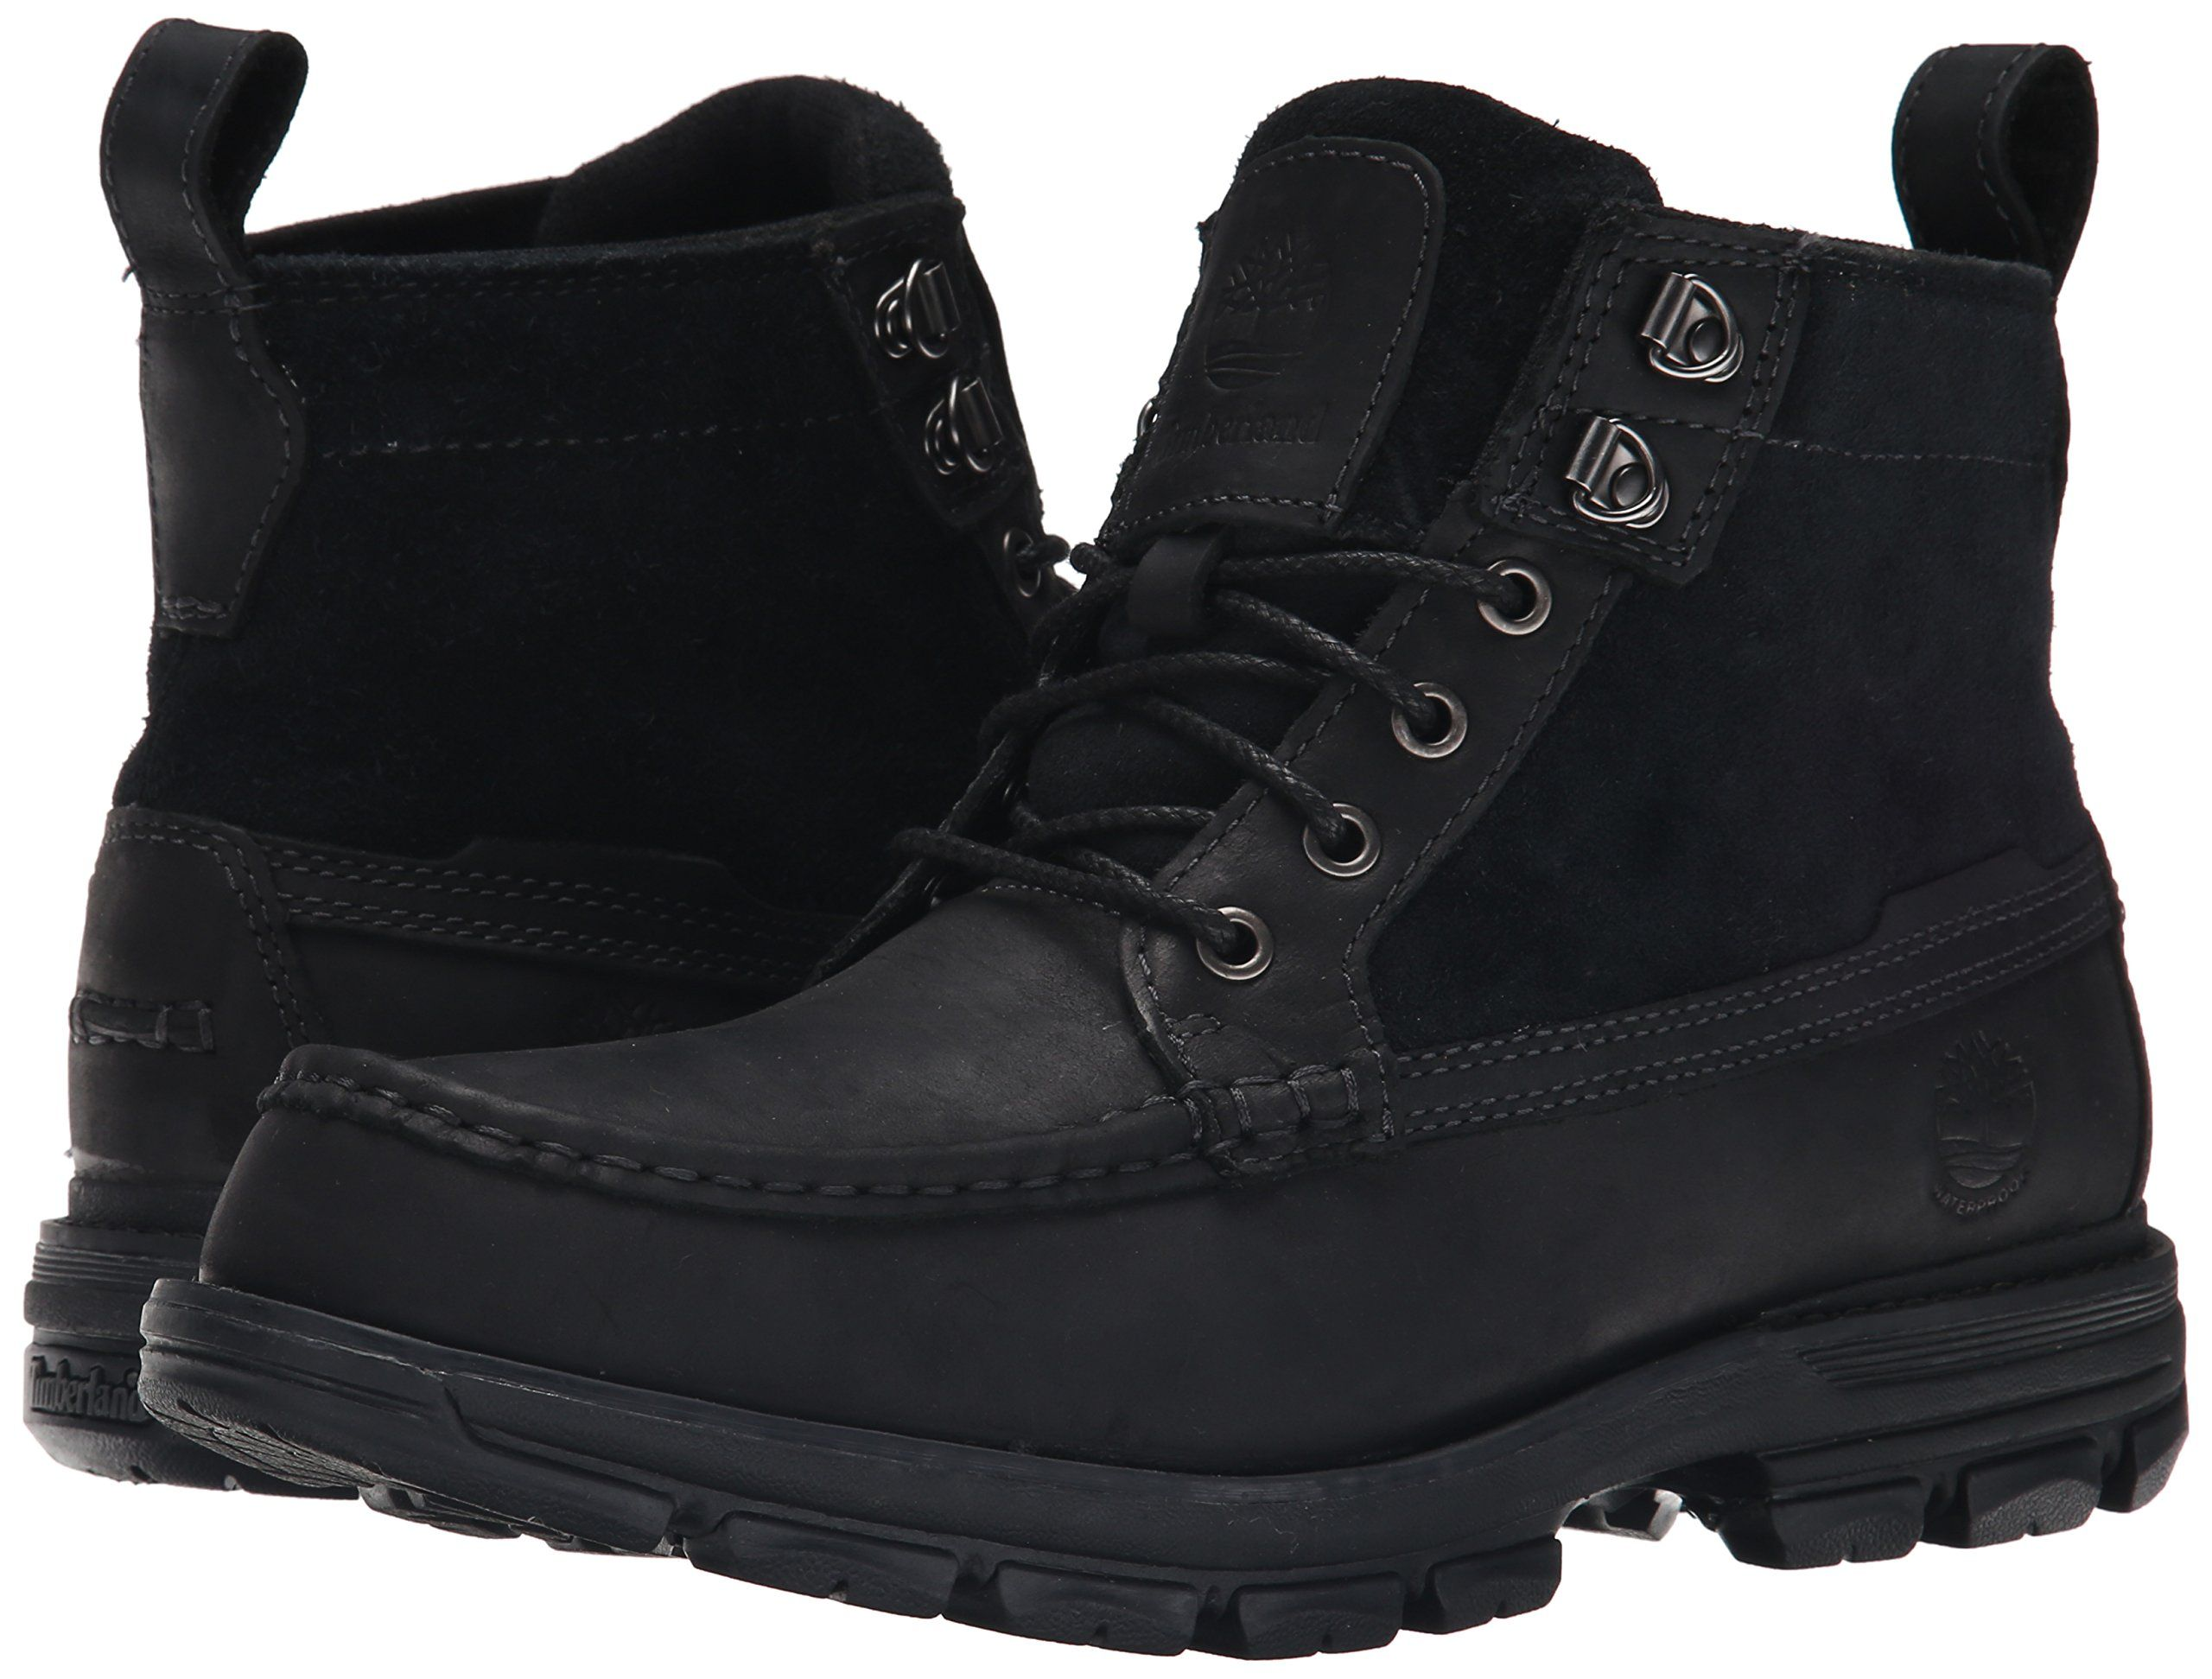 7ea020b7a477 Timberland Mens Heston Mid Waterproof Boot Black 9 M US   Want to know  more